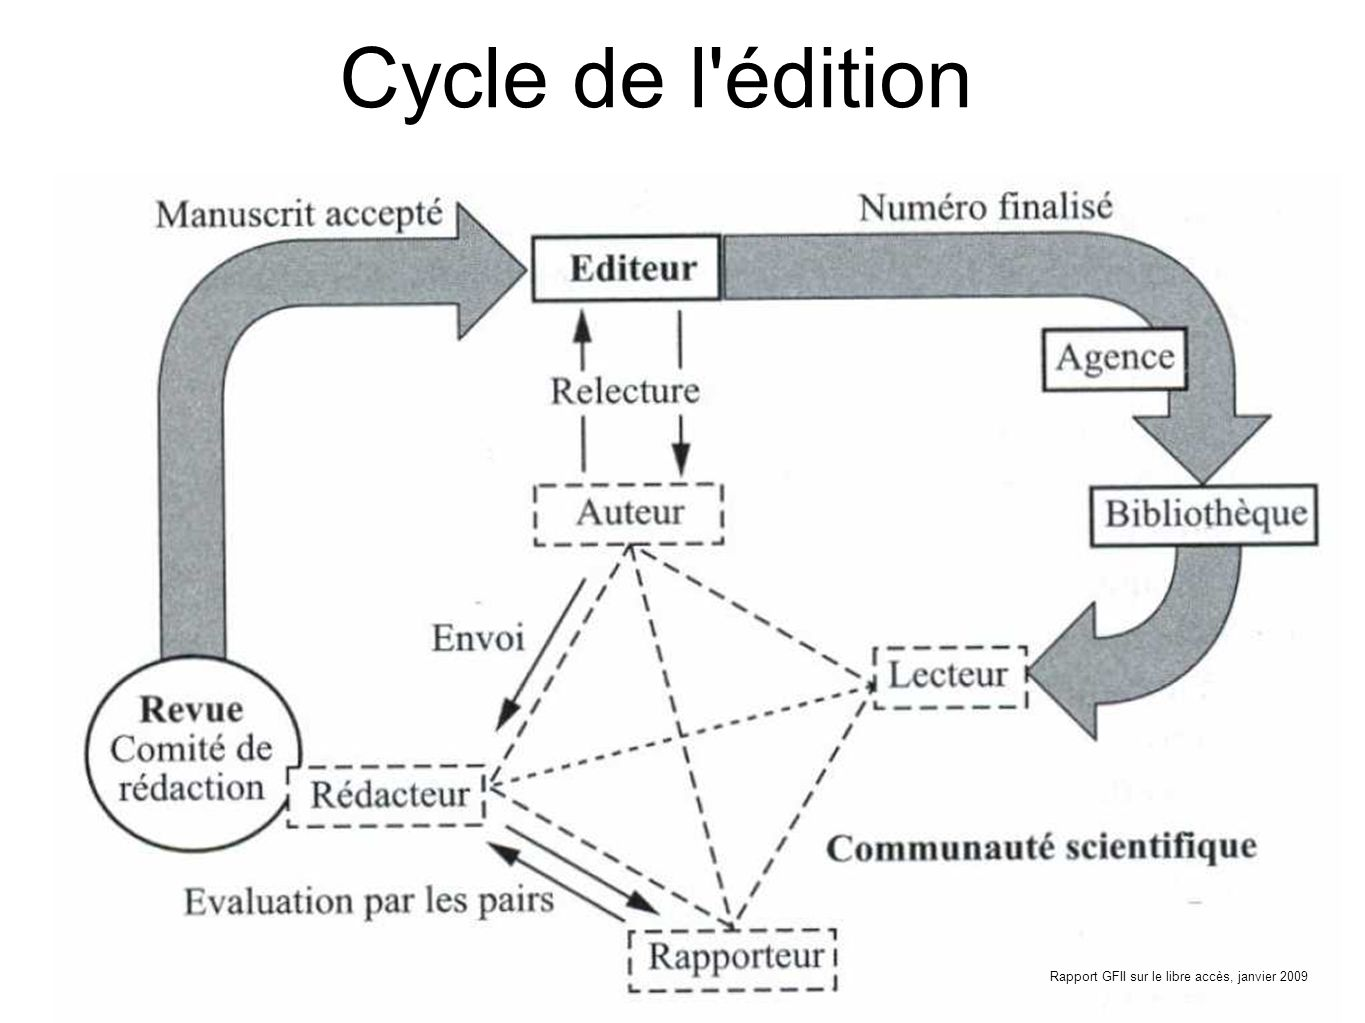 Cycle de linformation (usage de linformation et production de résultats) Cycle de l édition (publication des résultats) Contexte de la recherche Communication scientifique (diffusion des résultats) Acteurs : Pairs Editeurs institutions La question de lévaluation